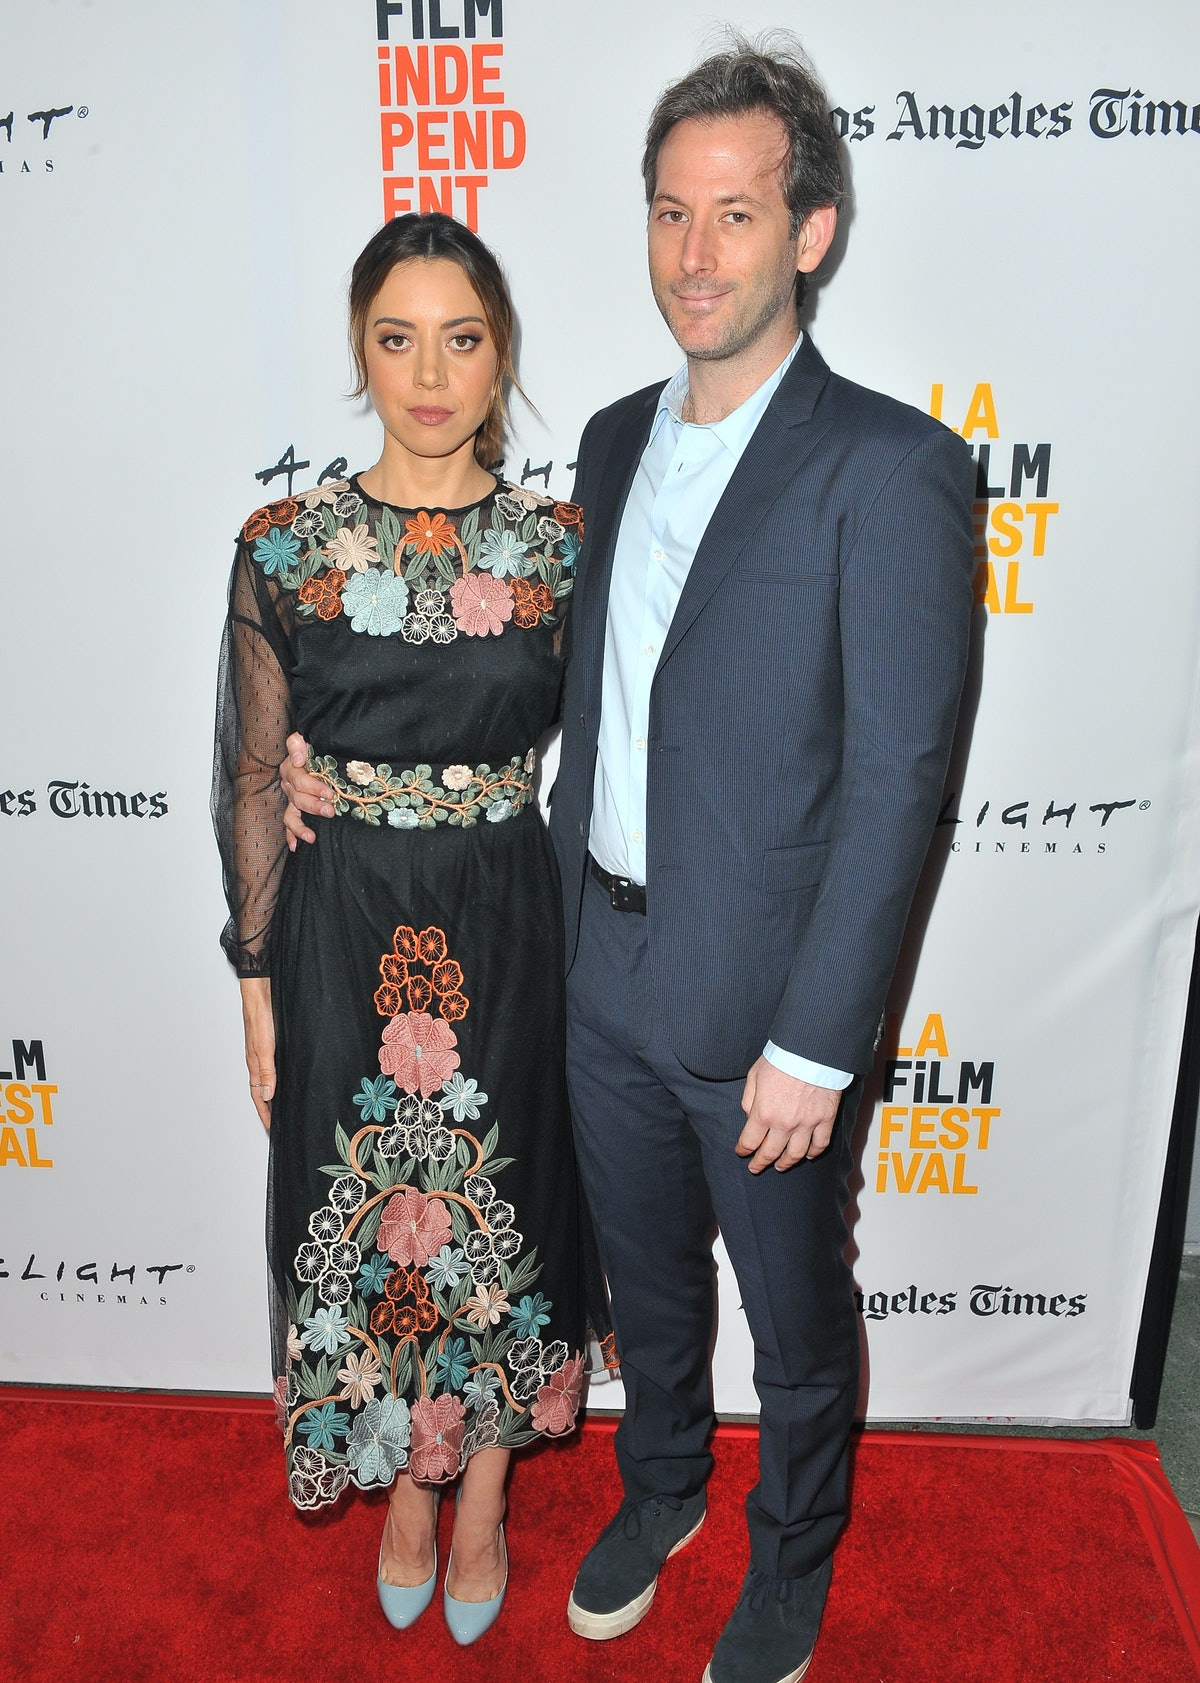 Aubrey Plaza in a floral dress, Jeff Baena in a suit